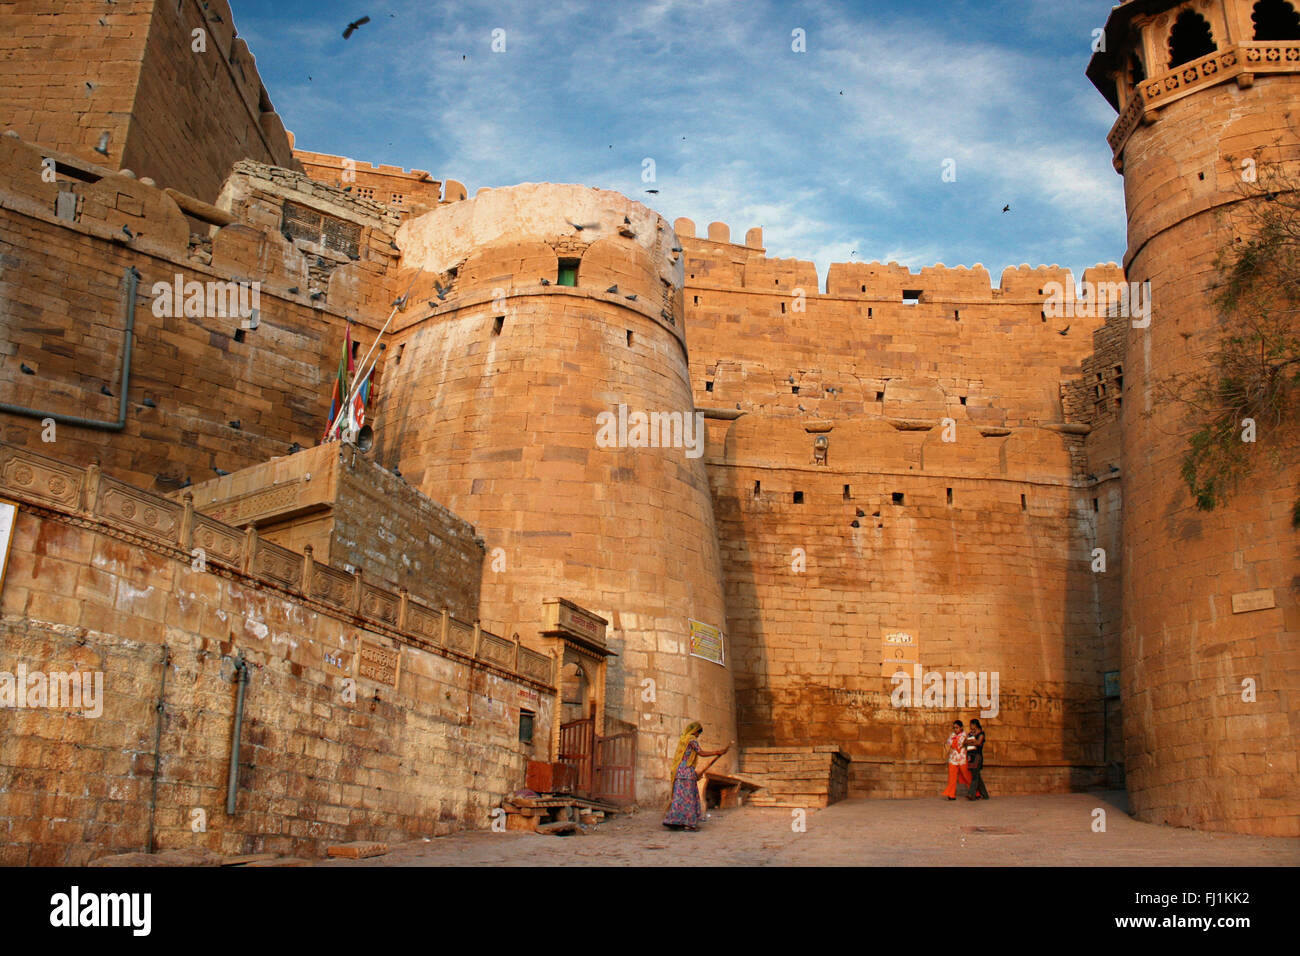 Entrance  and rampart of Jaisalmer fort, Rajasthan, India - Stock Image